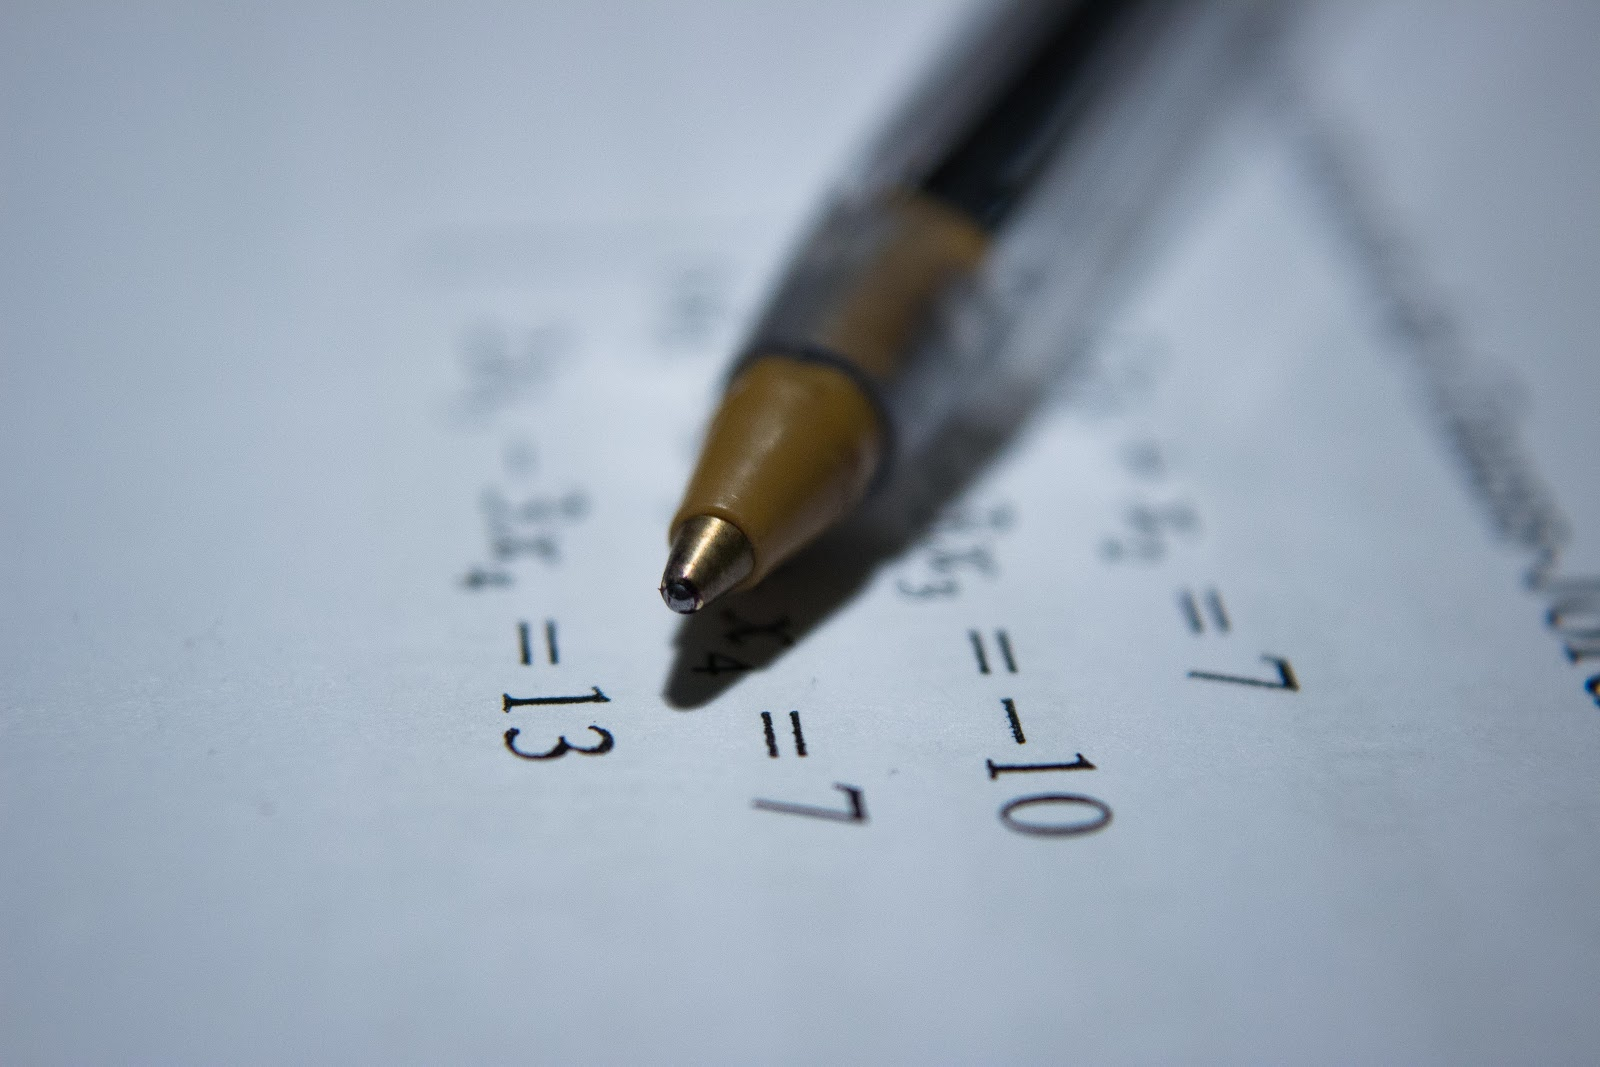 A pen being used in some mathematical problems.